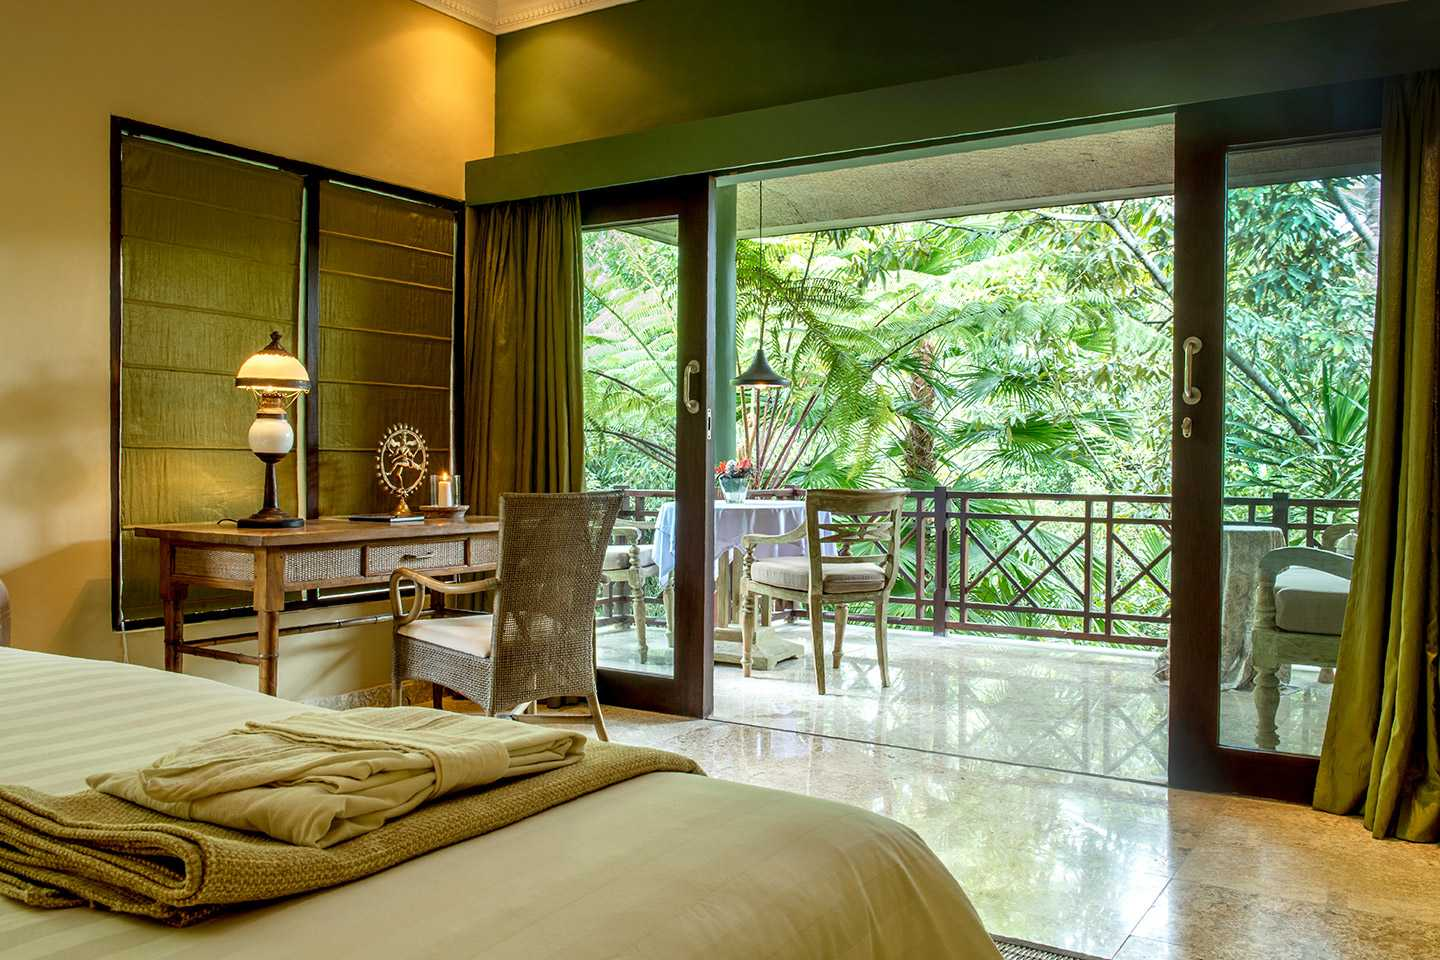 Ayurveda resort in Bali